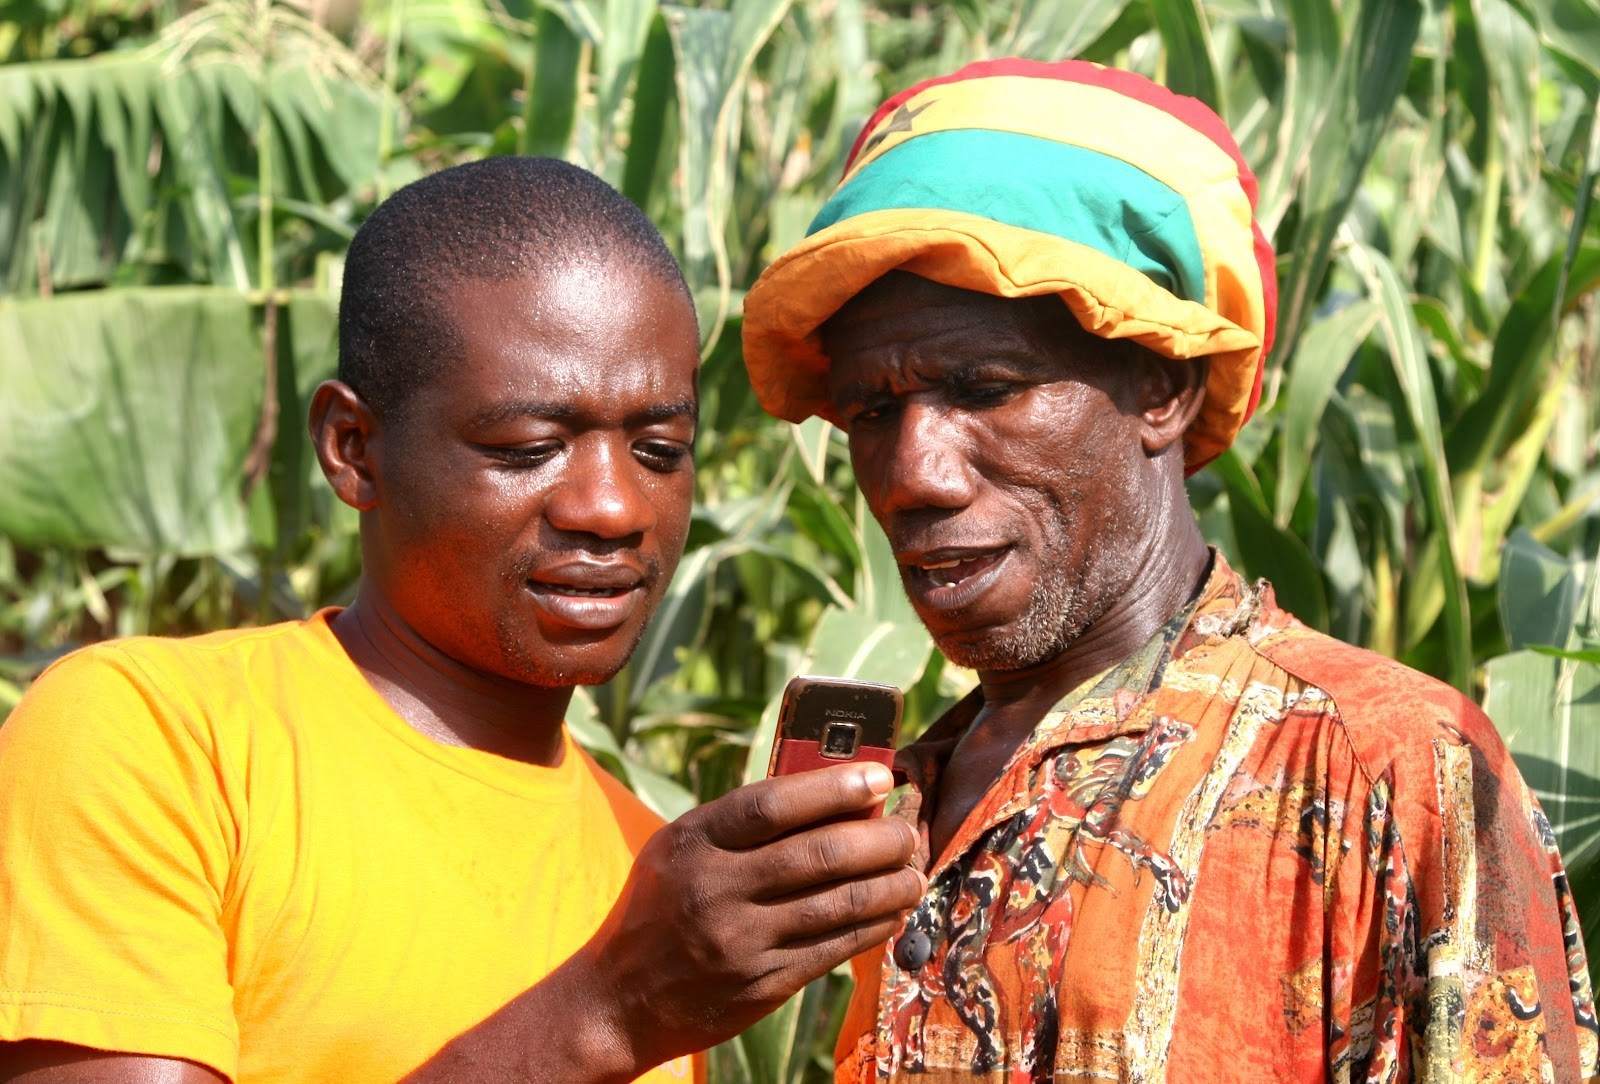 Alosfarm is modernizing and transforming agricultural supply chain in Nigeria